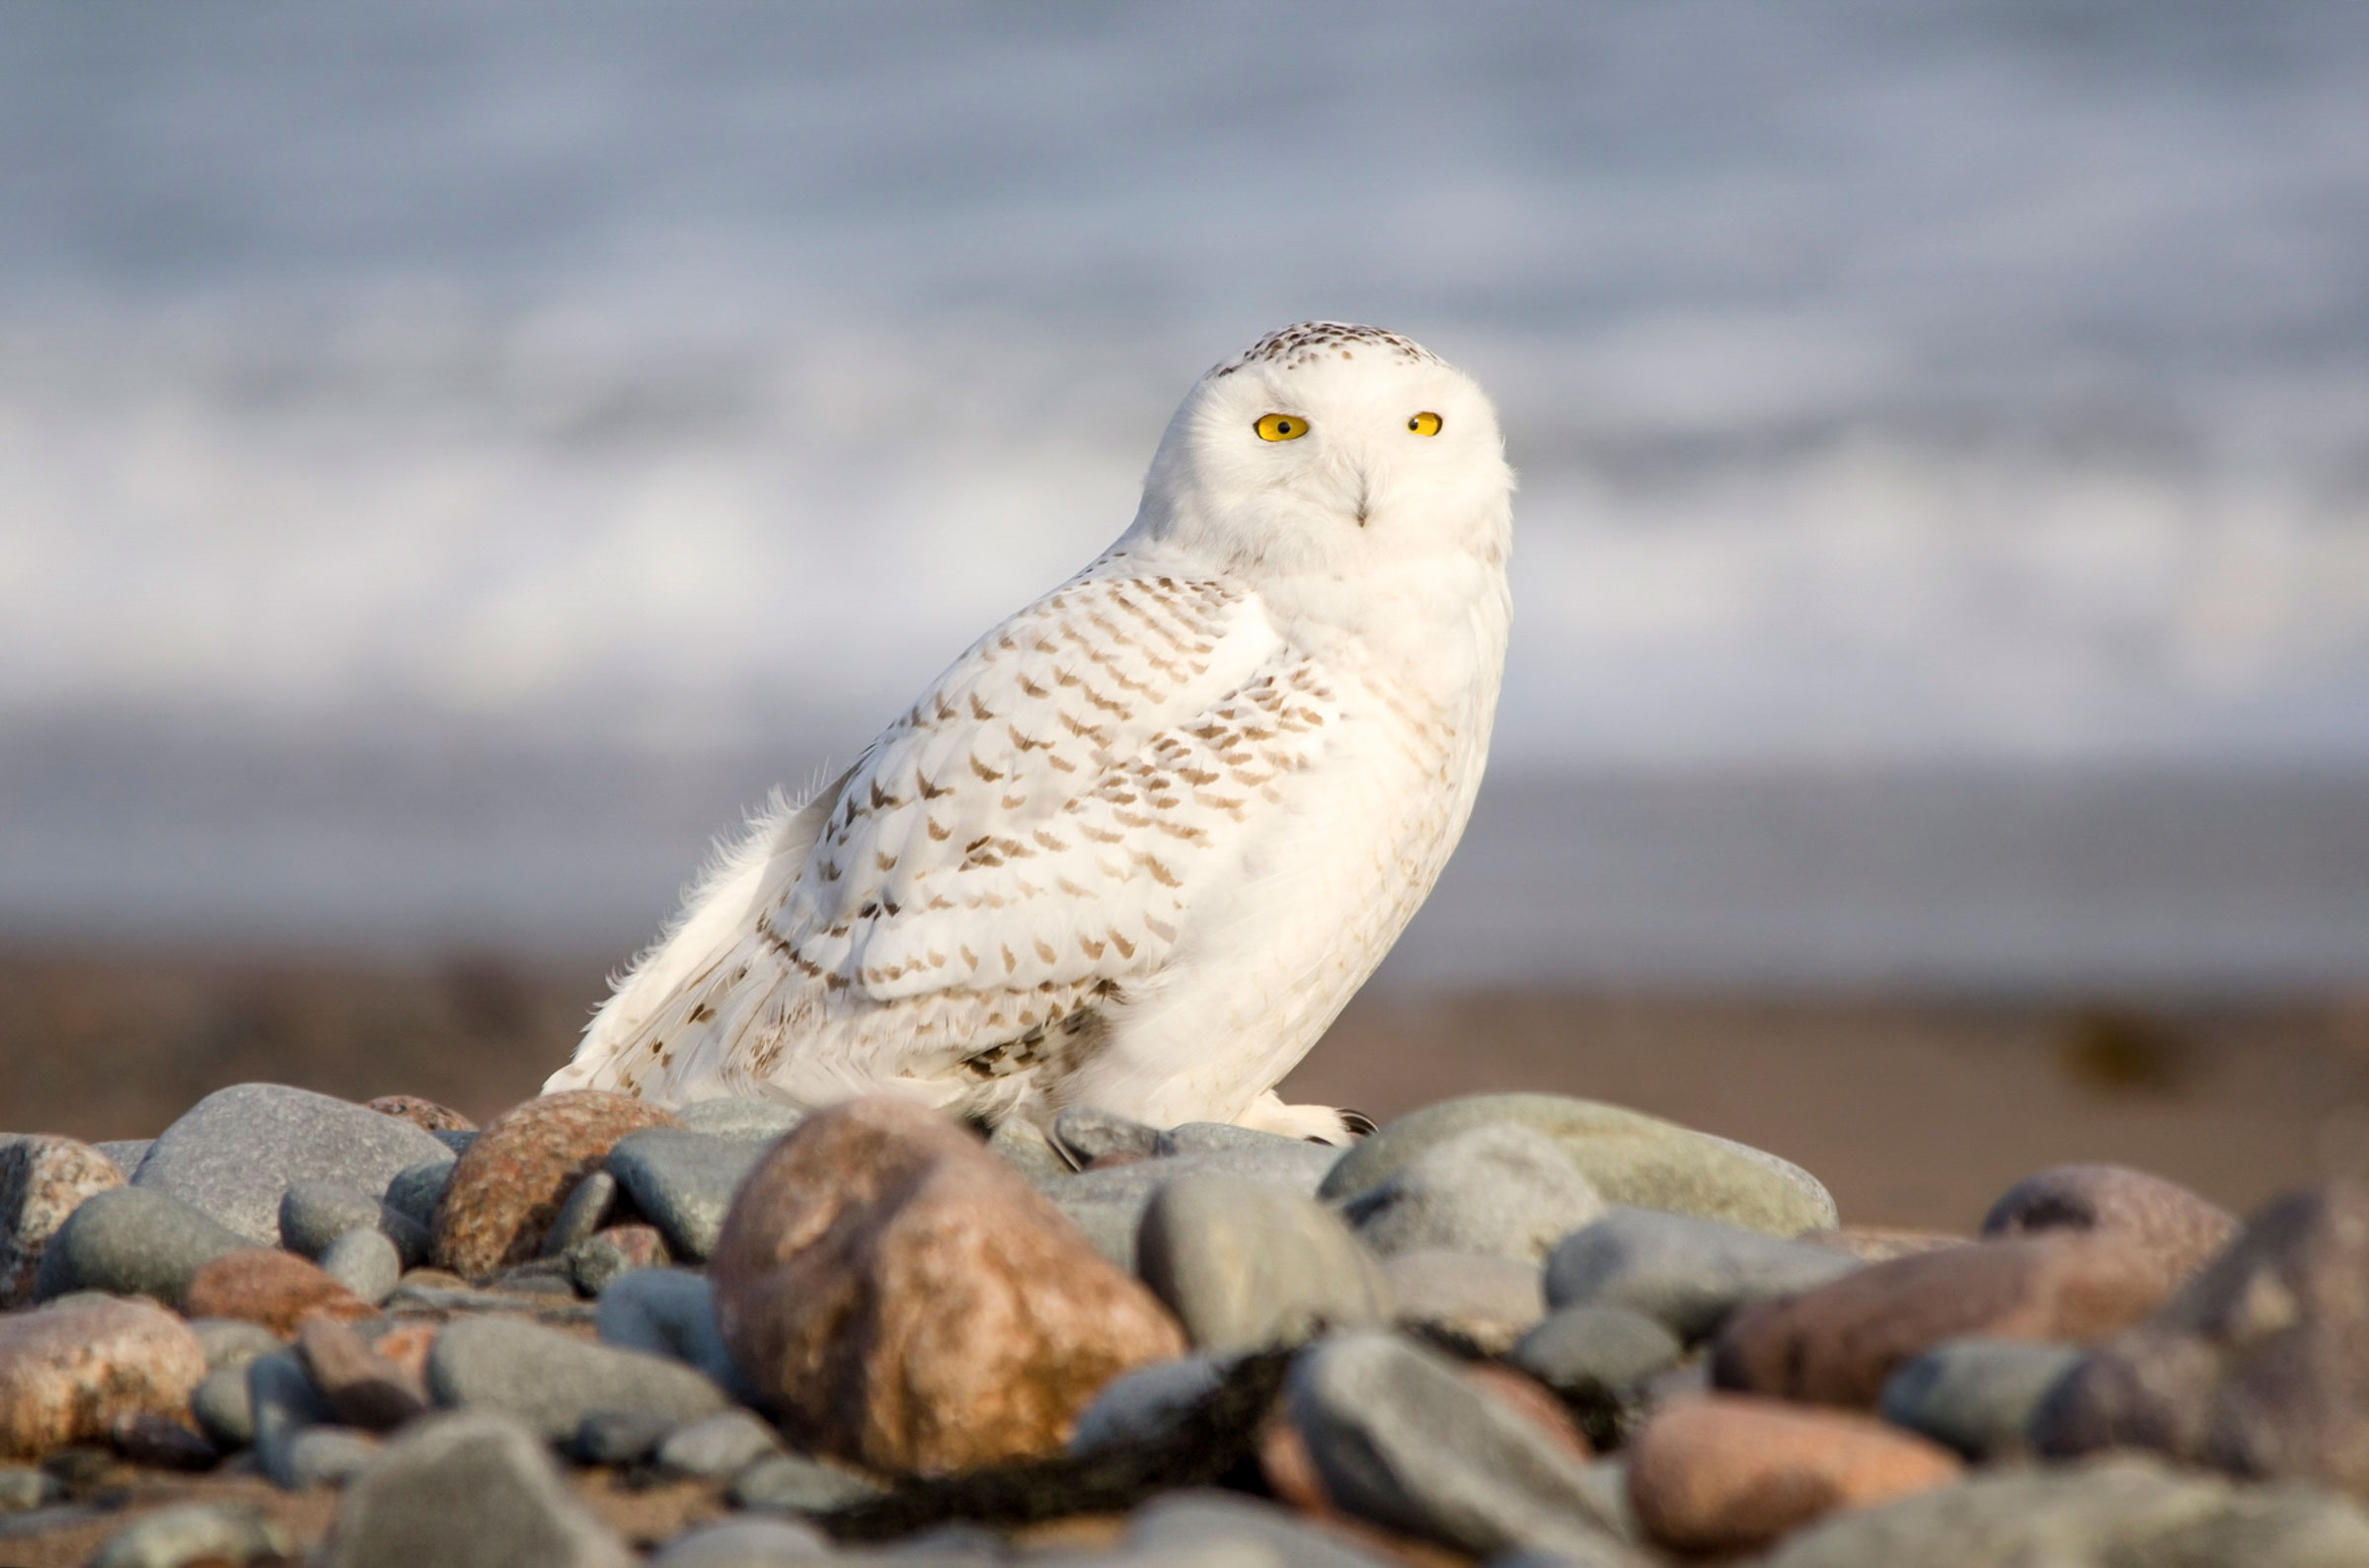 The Snowy Owl's stately plumage wasn't enough for a win. Peter Brannon/Audubon Photography Awards